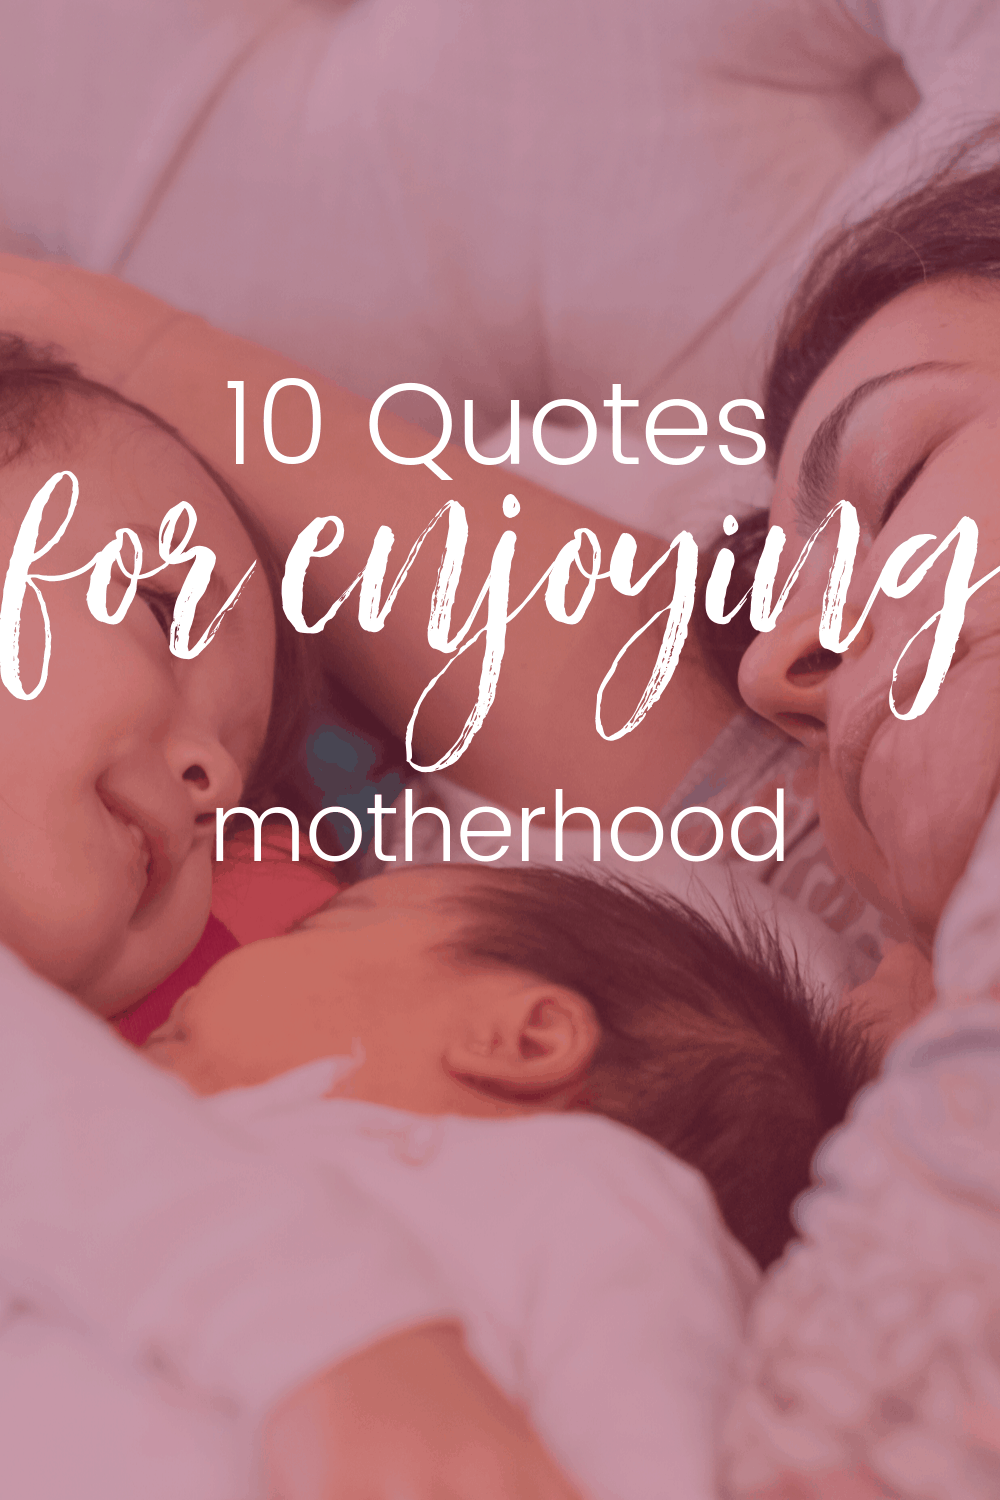 10 Quotes For Moms Who Are (Not) Enjoying Motherhood 1